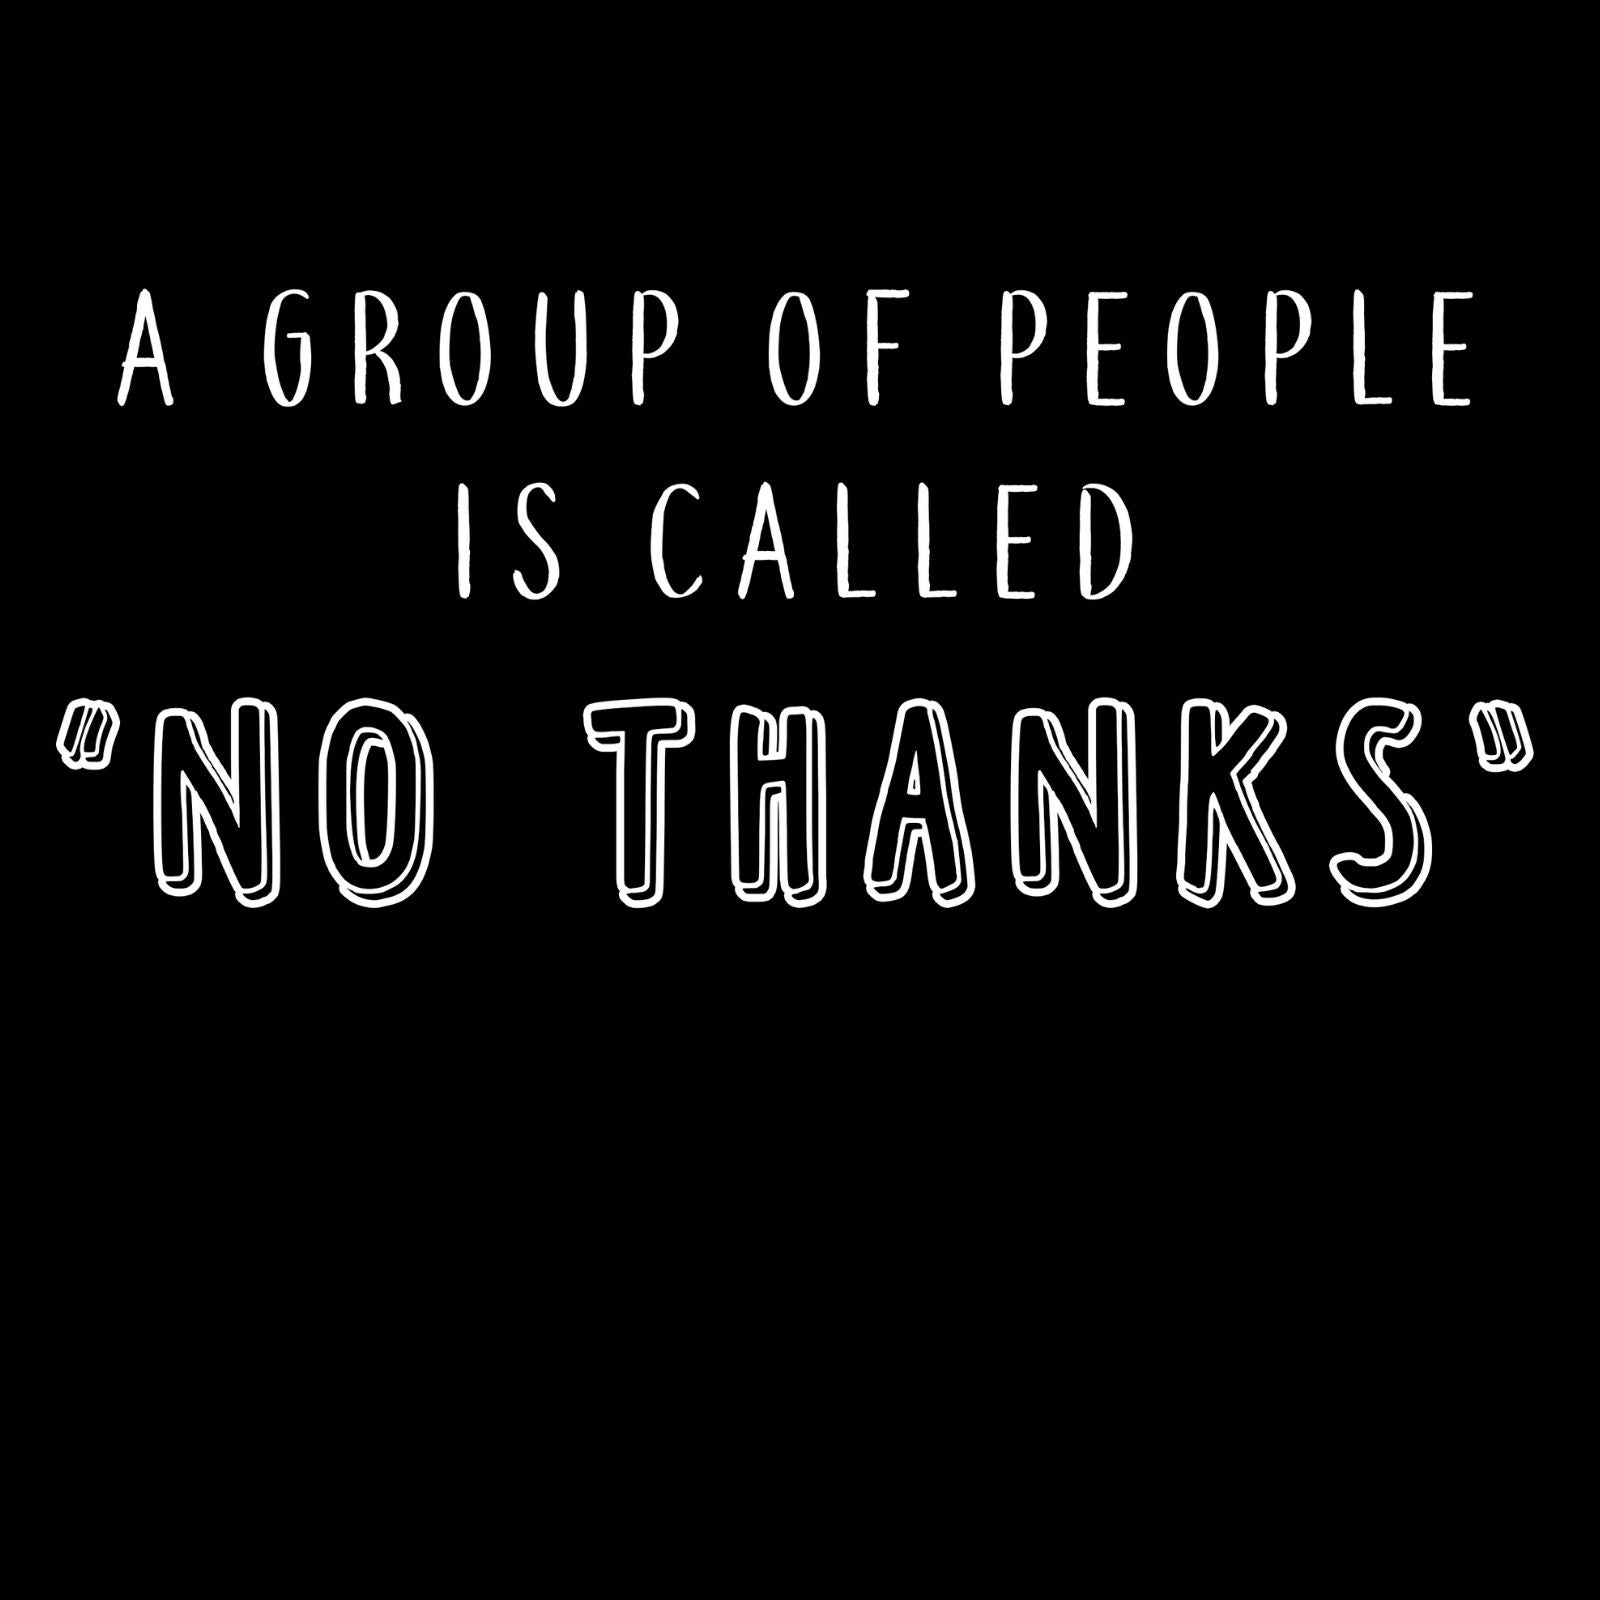 "A Group Of People Is Called ' No Thanks"" - Bastard Graphics"